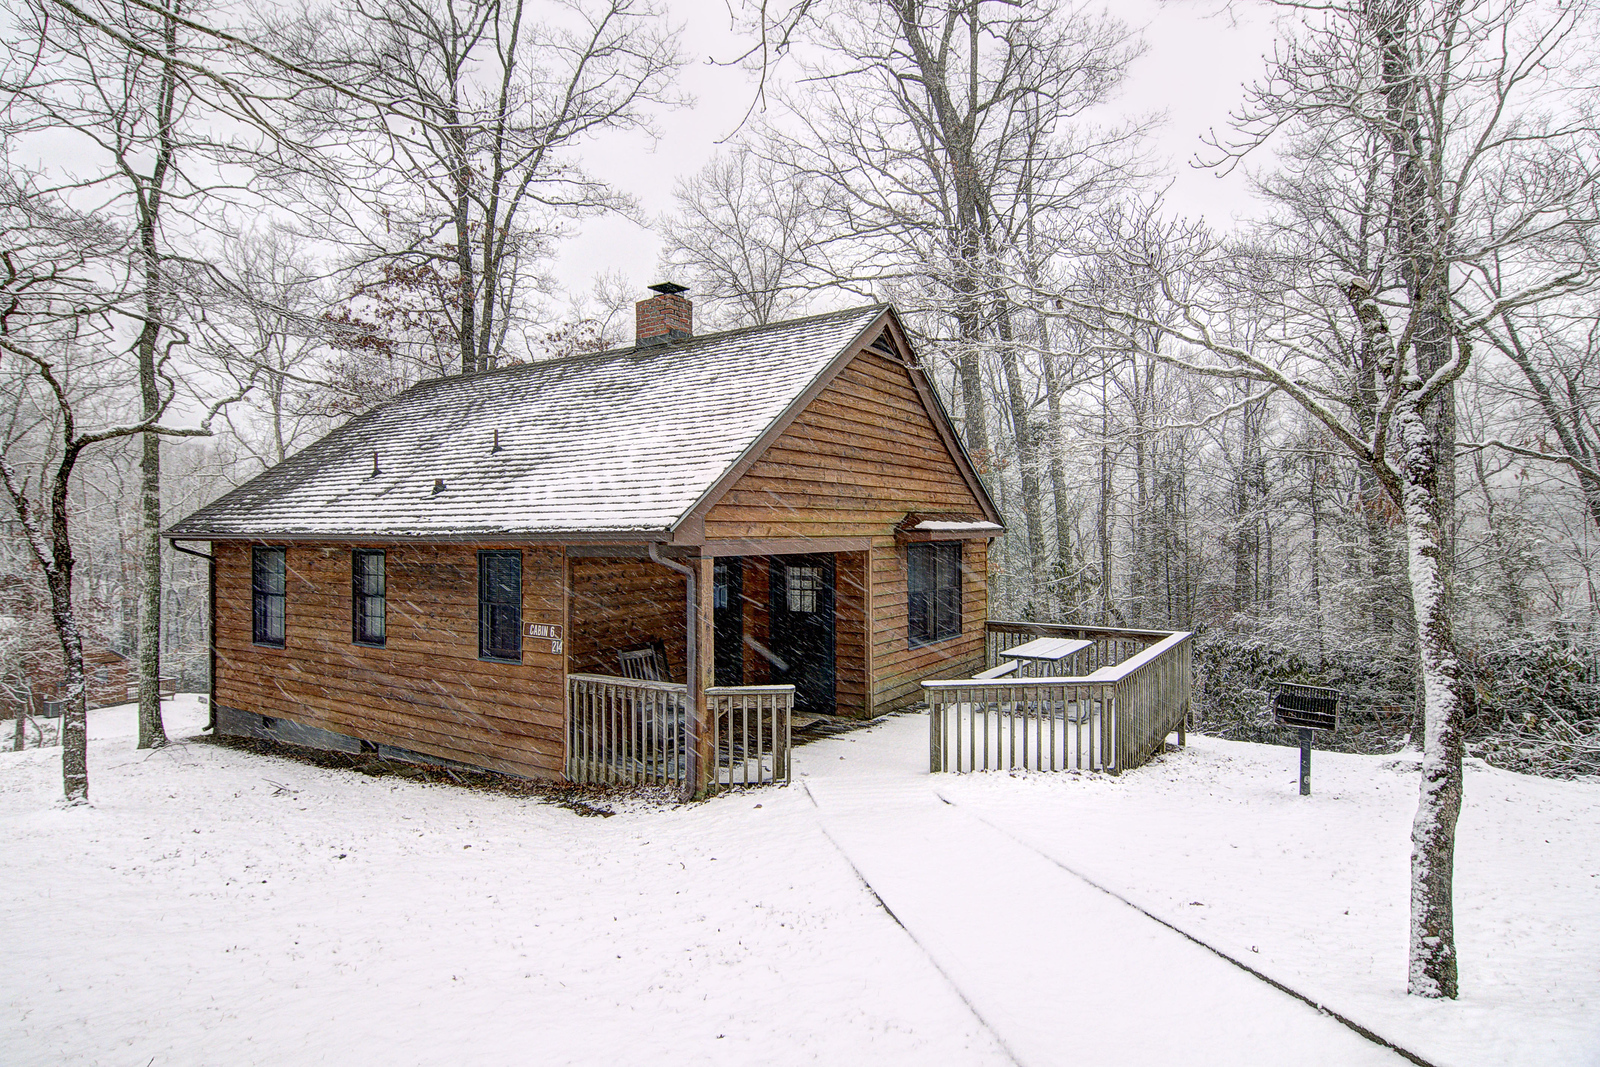 Snow Covers A Rental Cabin At Hungry Mother State Park In Marion, VA On  Tuesday